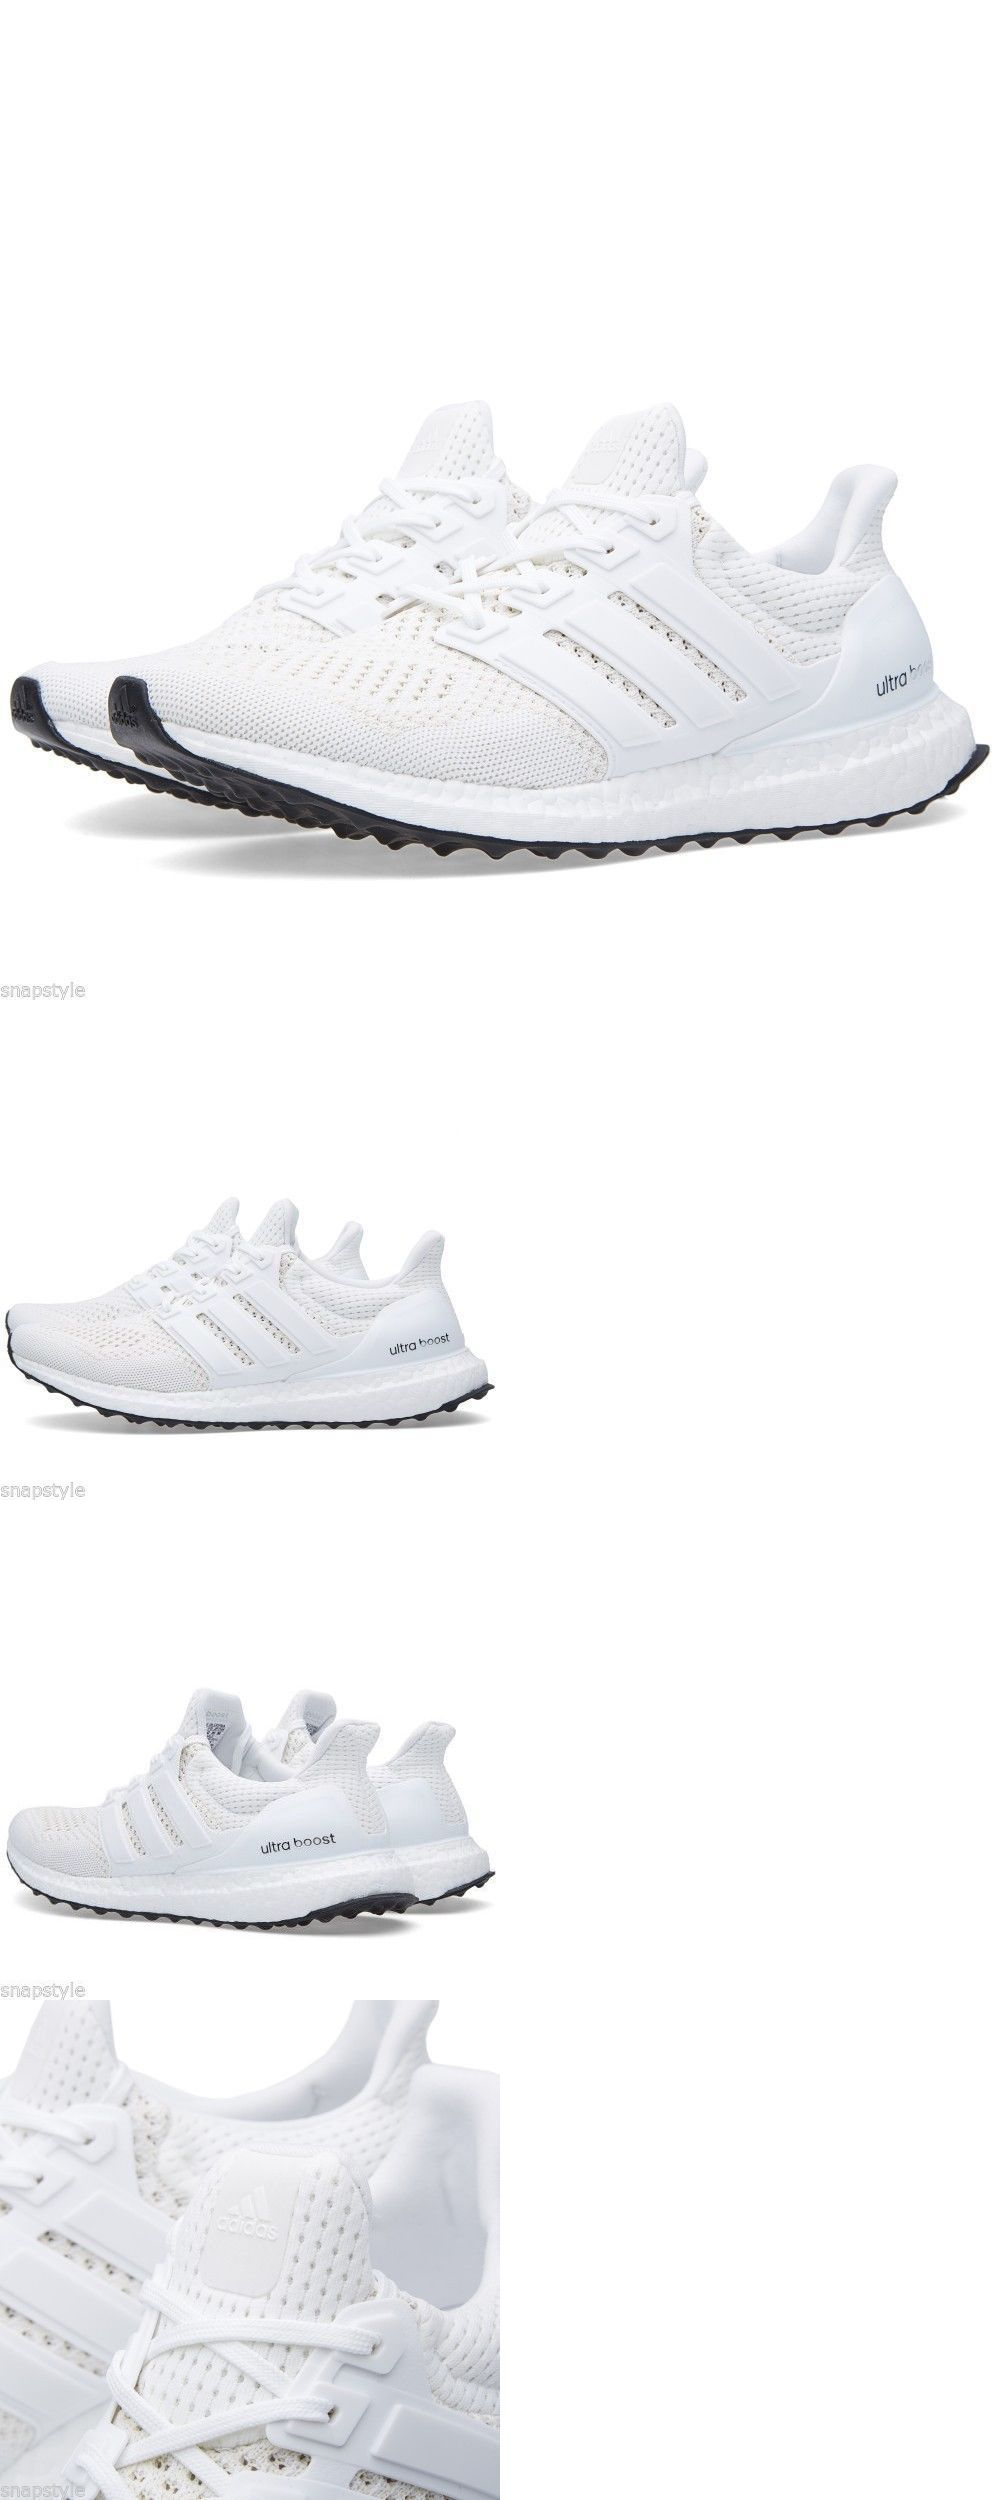 b31bed85f8c48 ... men 158952 new adidas ultra boost m 1.0 white ultraboost s77416 kanye  west running sneaker